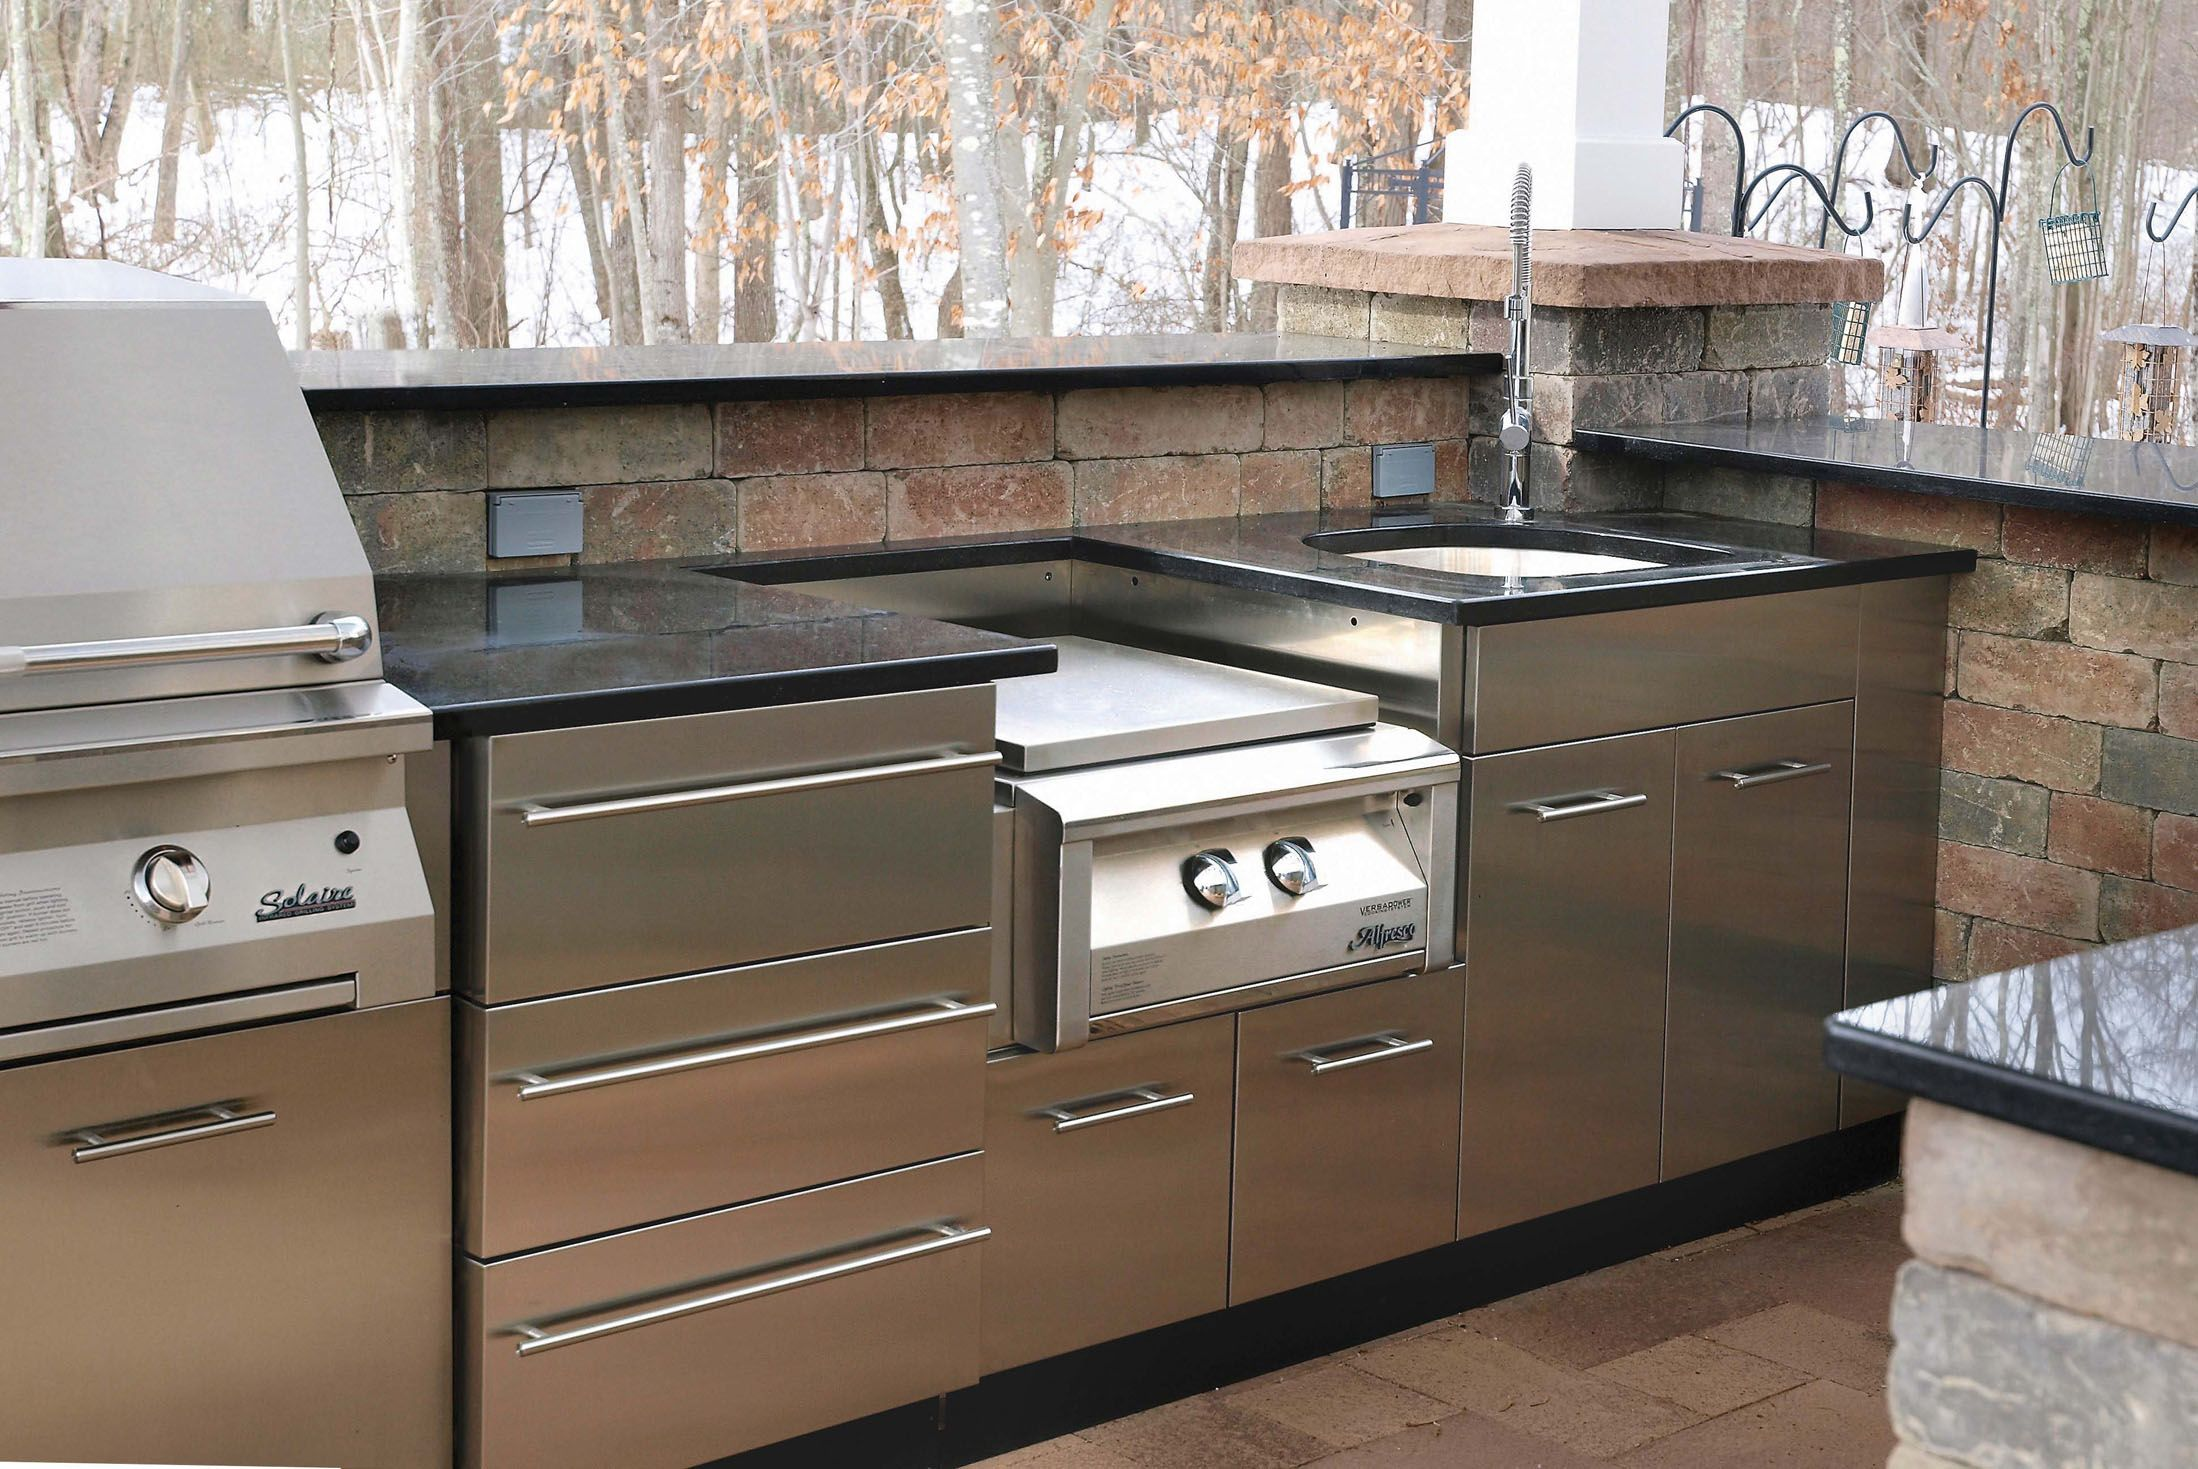 Outdoor Stainless Kitchen In Winter In Ct From Stainless Steel